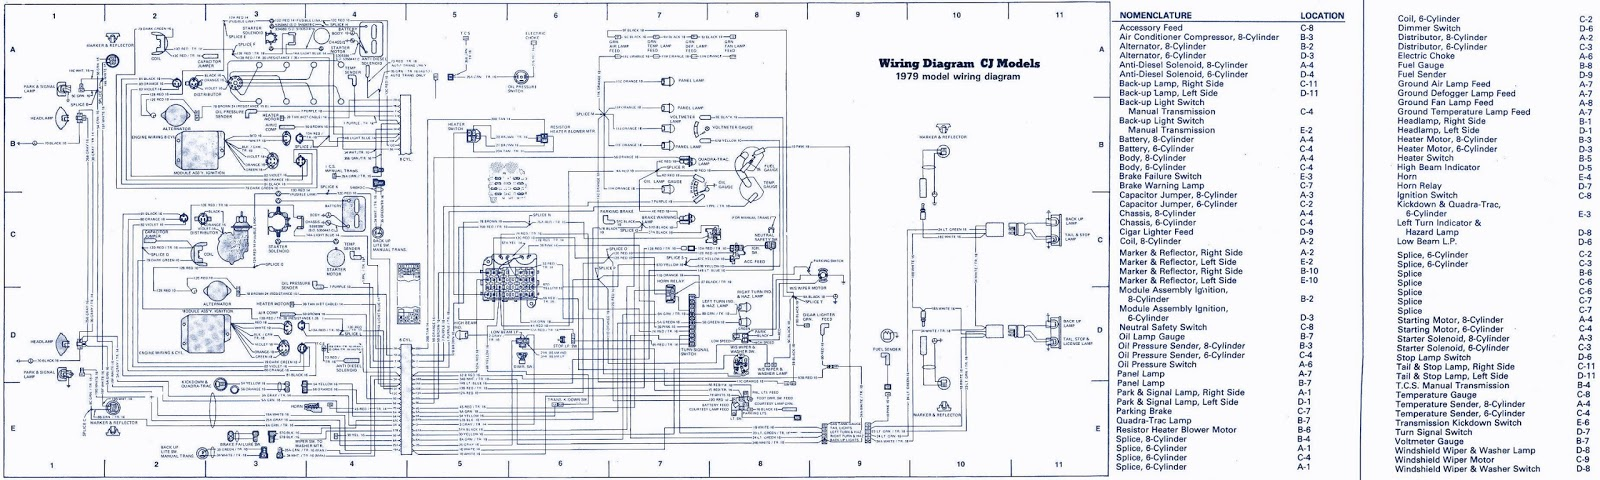 1979+Jeep+CJ+Models+Elecrical+Wiring+Diagram 1980 jeep cj5 wiring diagram electrical wiring diagrams for 1985 jeep cj5 wiring diagram at gsmx.co